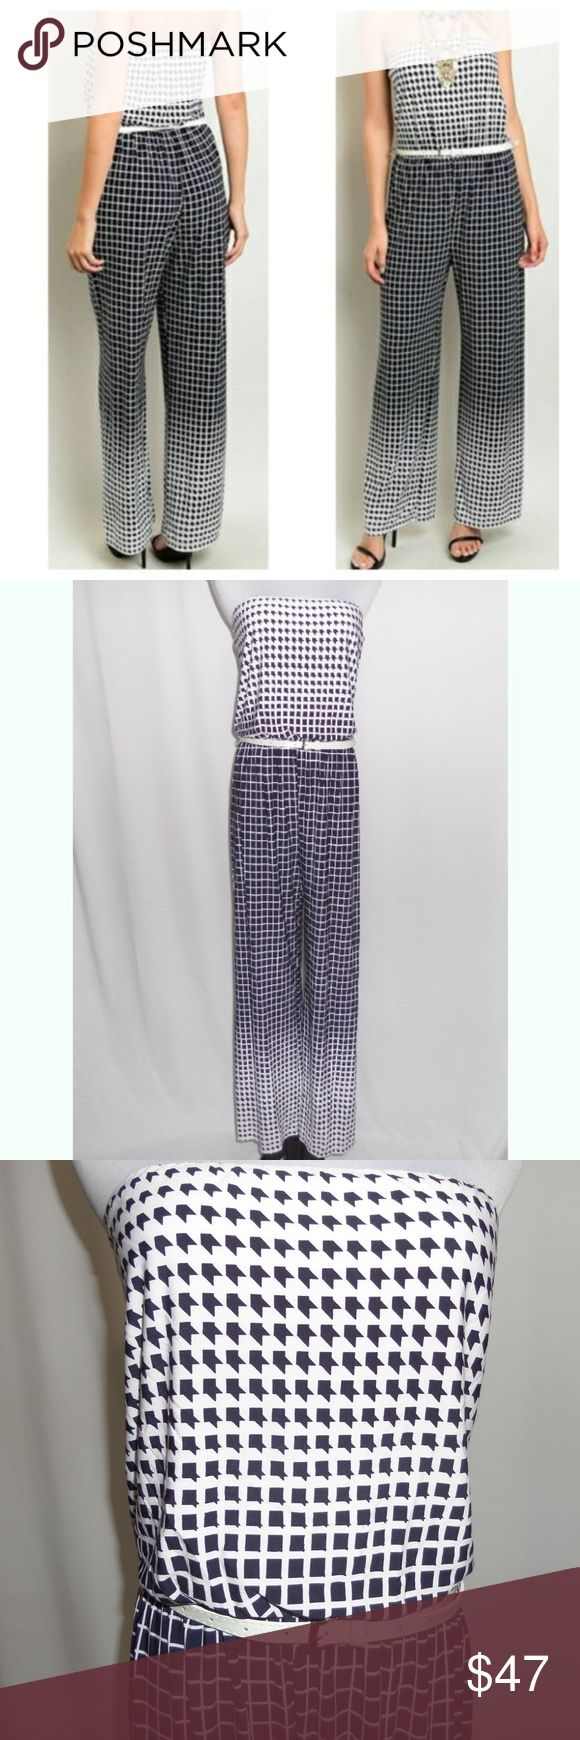 """{JUST IN} Dark Navy Blue Checkered Jumpsuit Dark Navy Blue/White Print Jumpsuit (almost looks black in some lighting) Fading pattern of houndstooth-checkered-houndstooth print Tube-top/sleeveless Stretch waist Includes the white belt Lined top front No padding 96% Polyester 4% Spandex Hand wash Made in USA New without tags  Pit to hem: 25""""  Inseam: 29""""  Pit to pit: S: 13-16"""" M: 14-17"""" L: 15-18""""  Waist:  S: 24-32"""" M: 26-34"""" L: 28-36""""  spring summer easter sunday church beach vacation cruise…"""